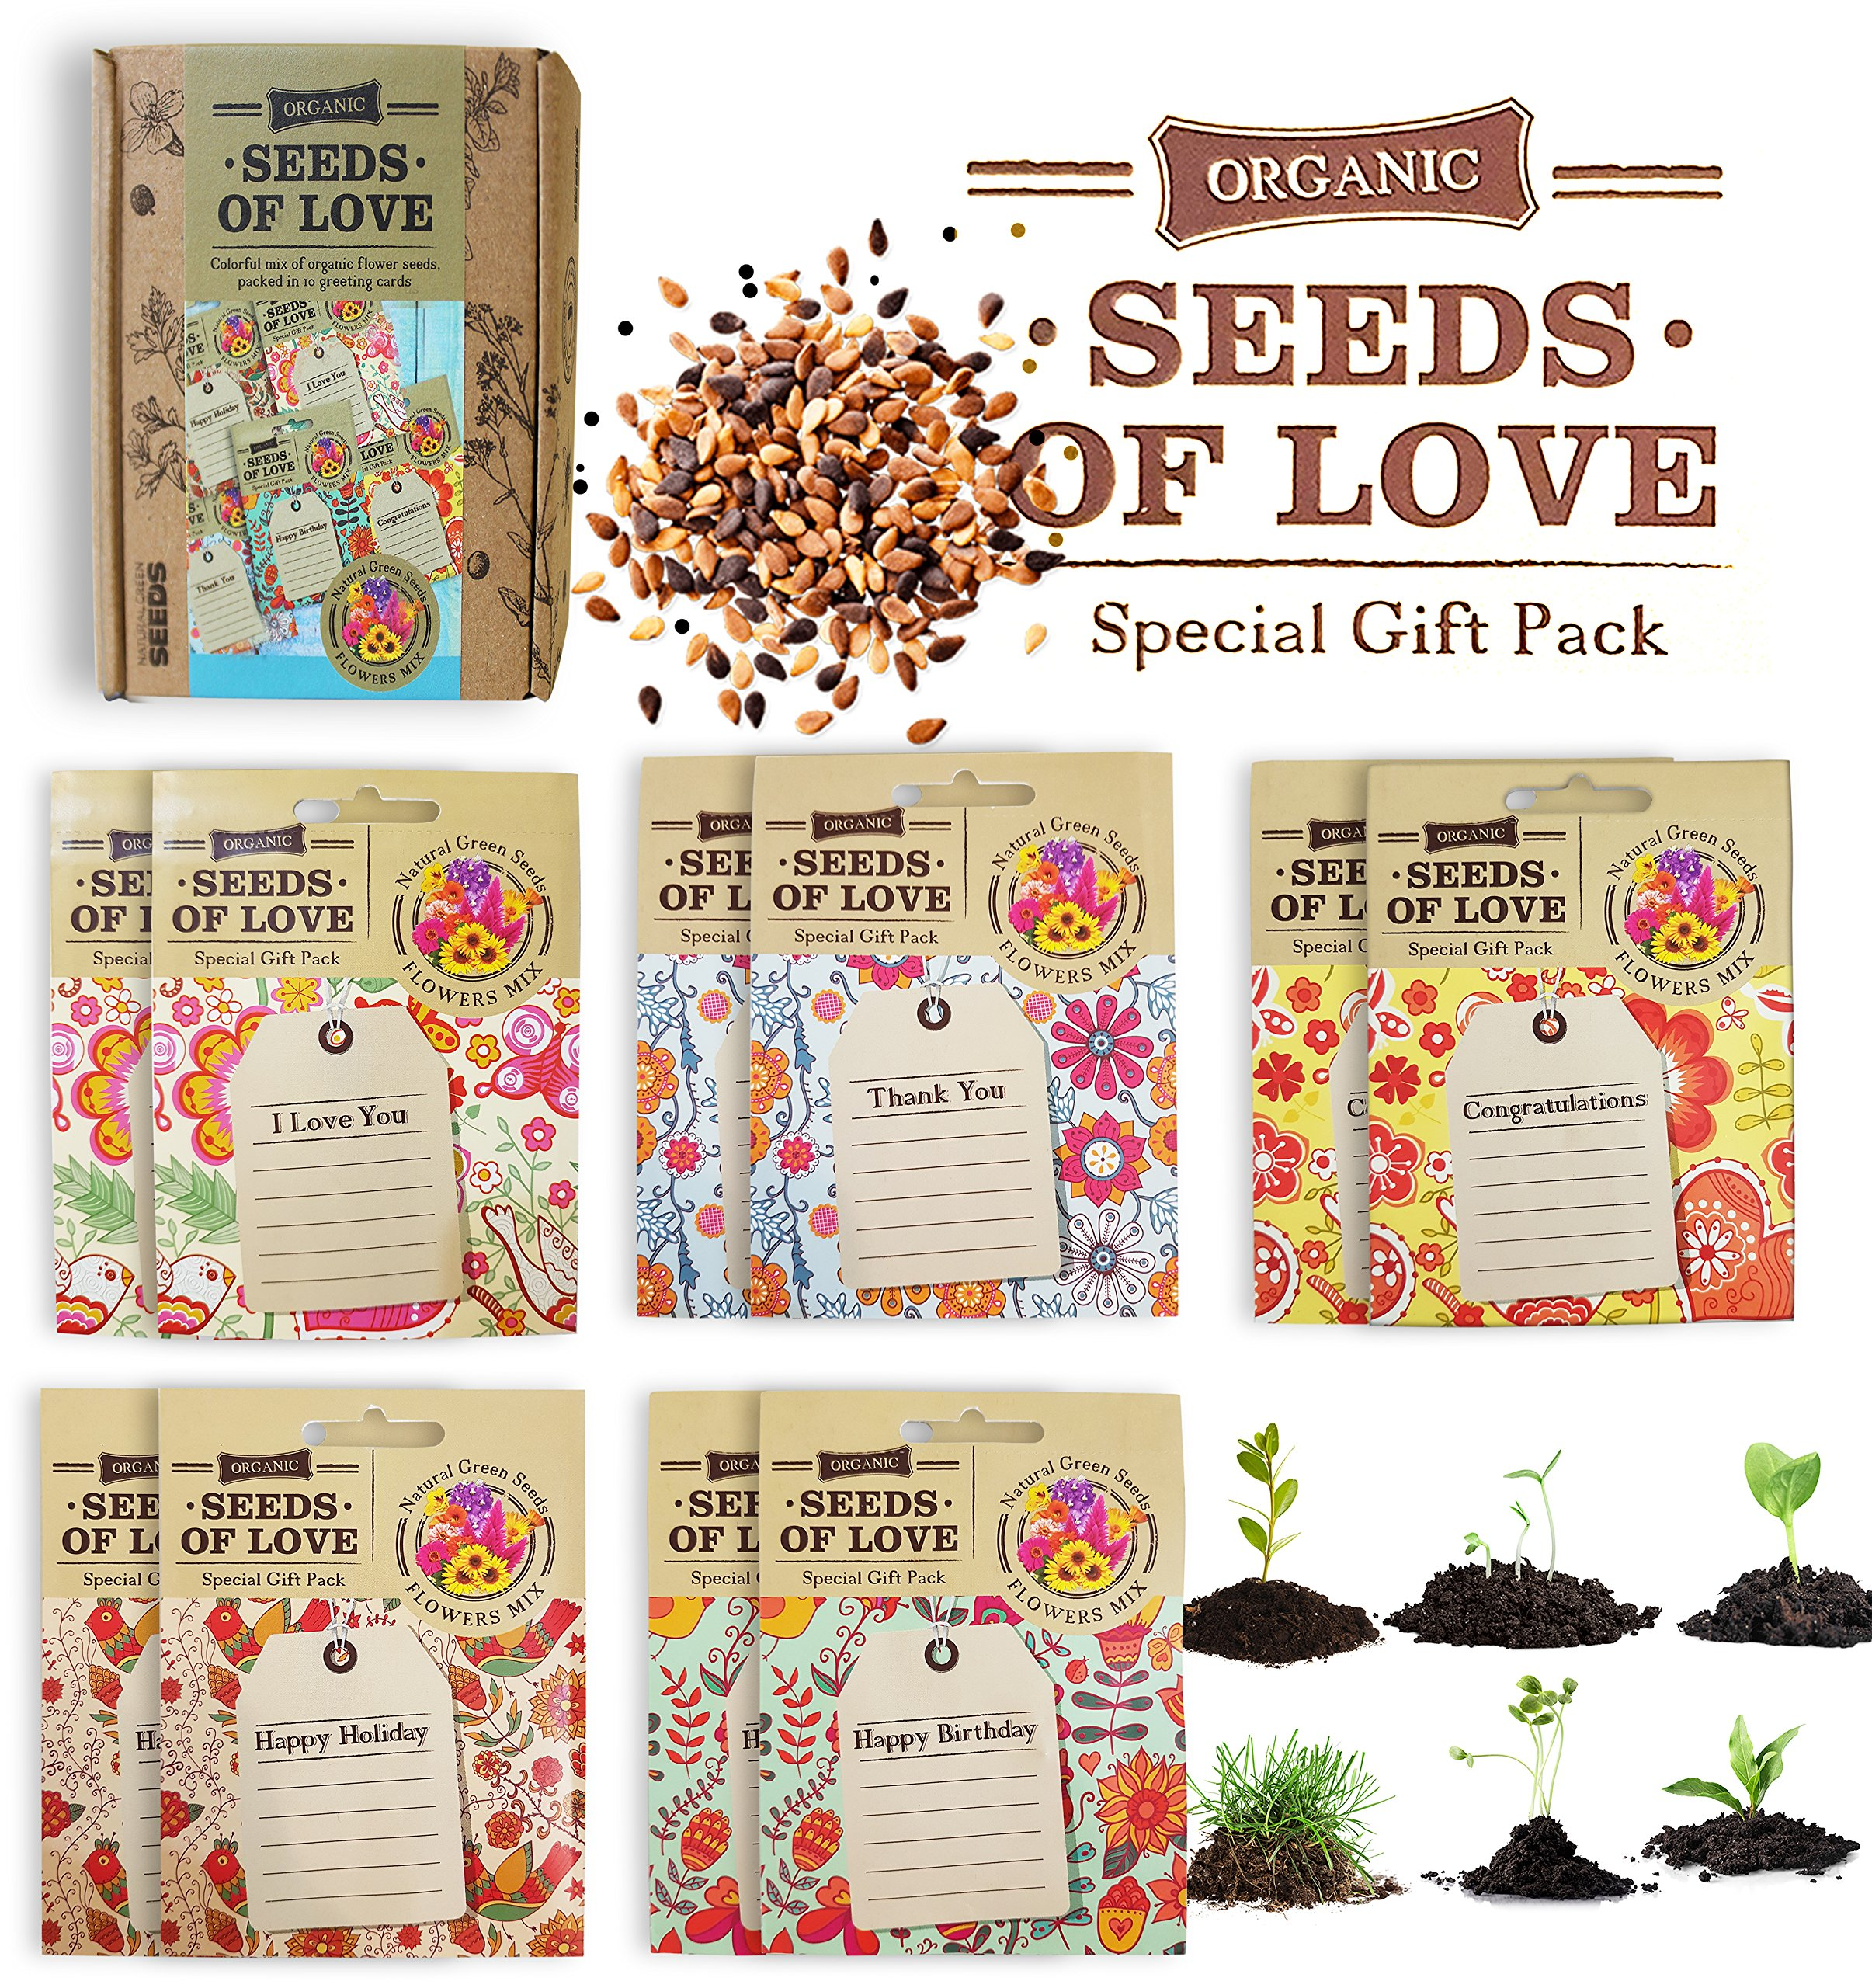 Seeds of Love: Greeting Cards with Organic Non-GMO Flower Seeds (10 pack)